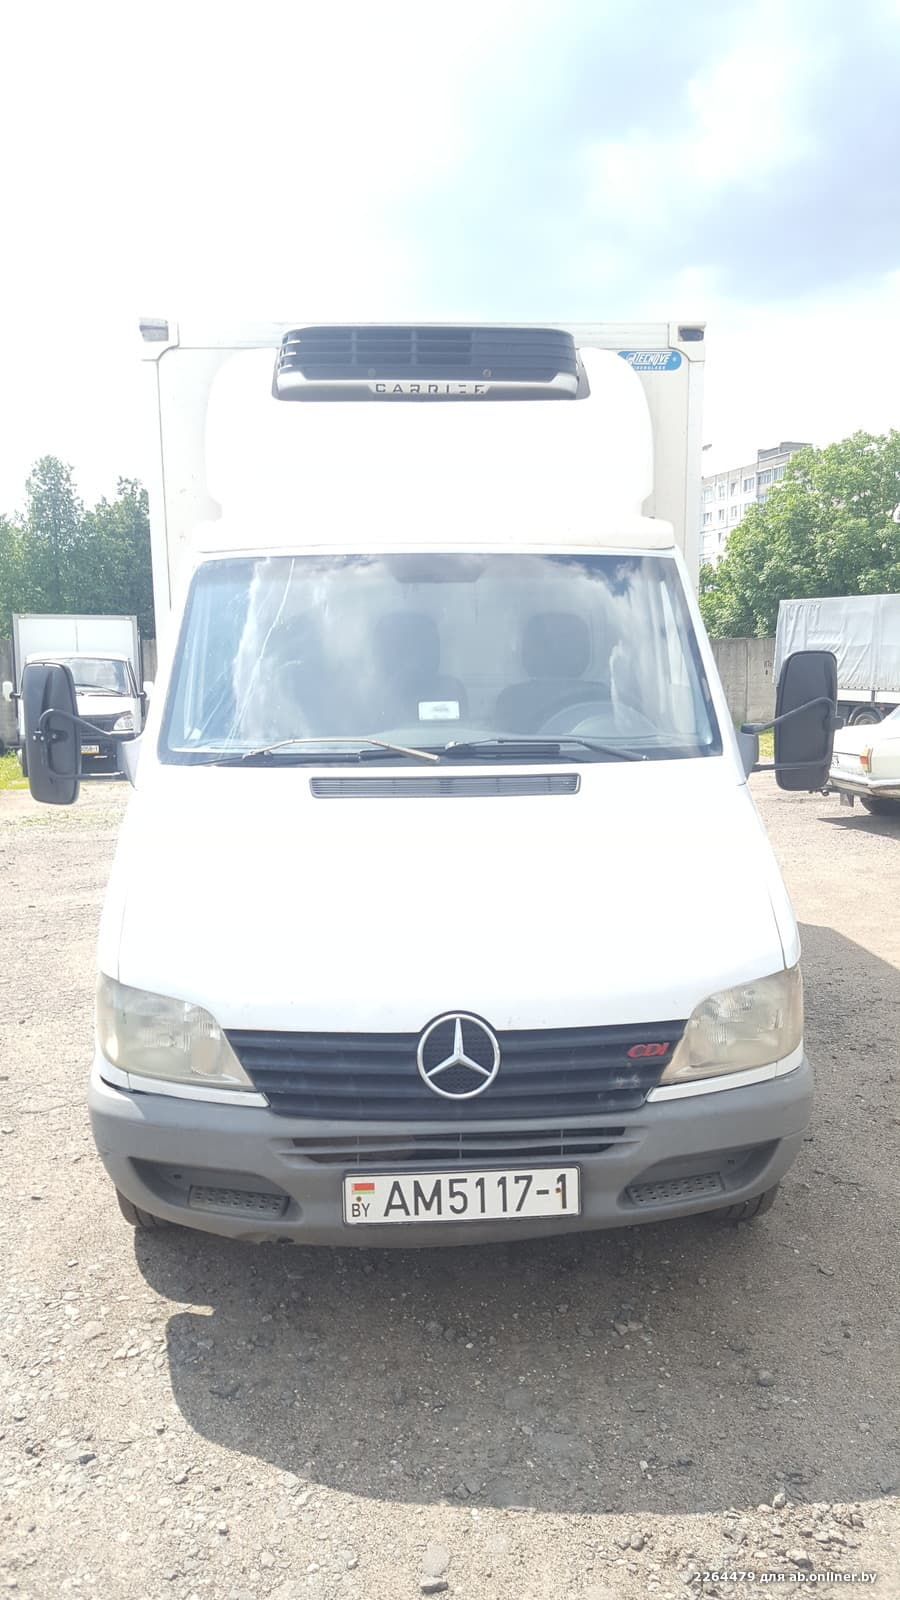 Mercedes-Benz Sprinter 413 CDI Рефрижерато